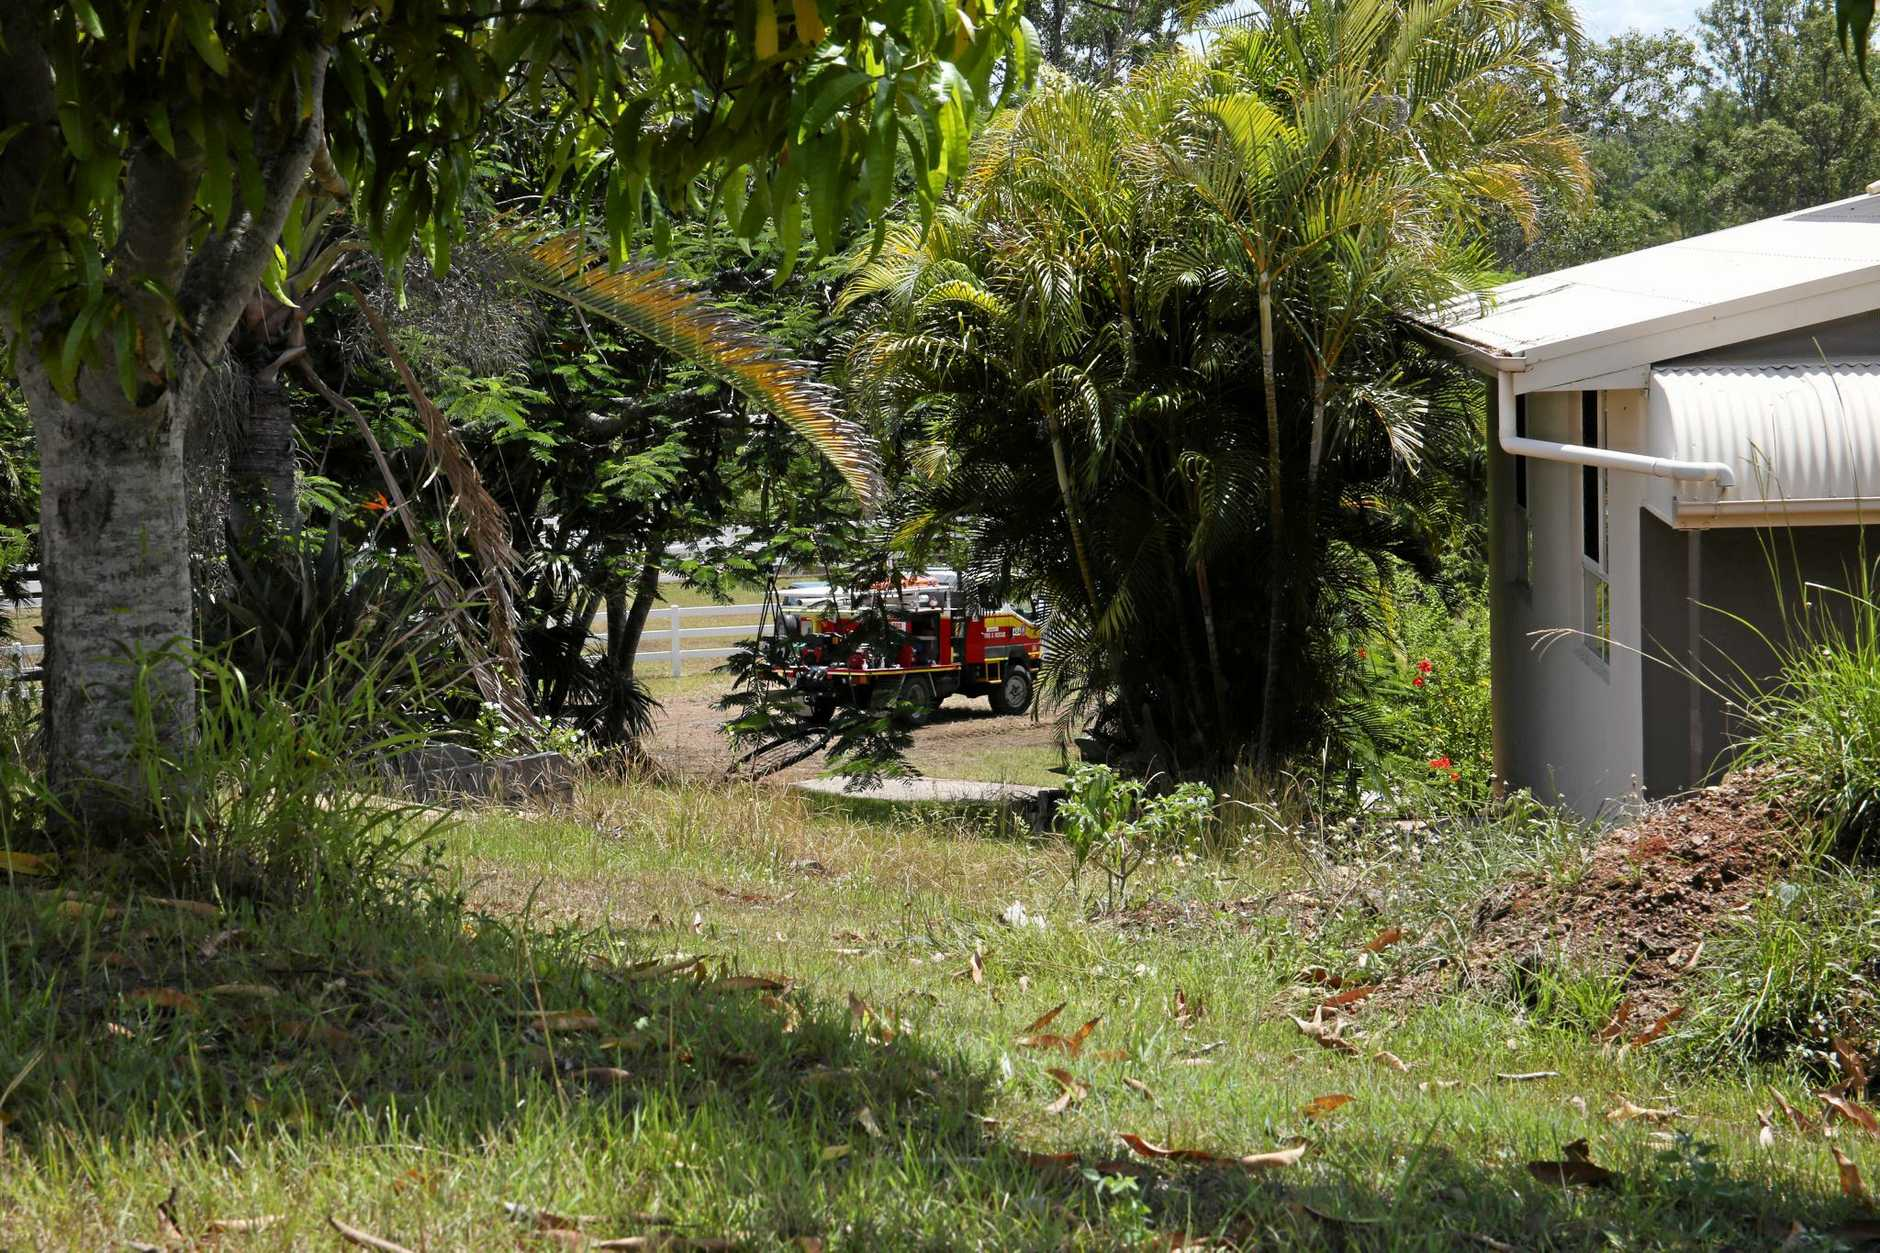 Scenes from the Lagoon Pocket property where a horse had suspected Hendra contamination.